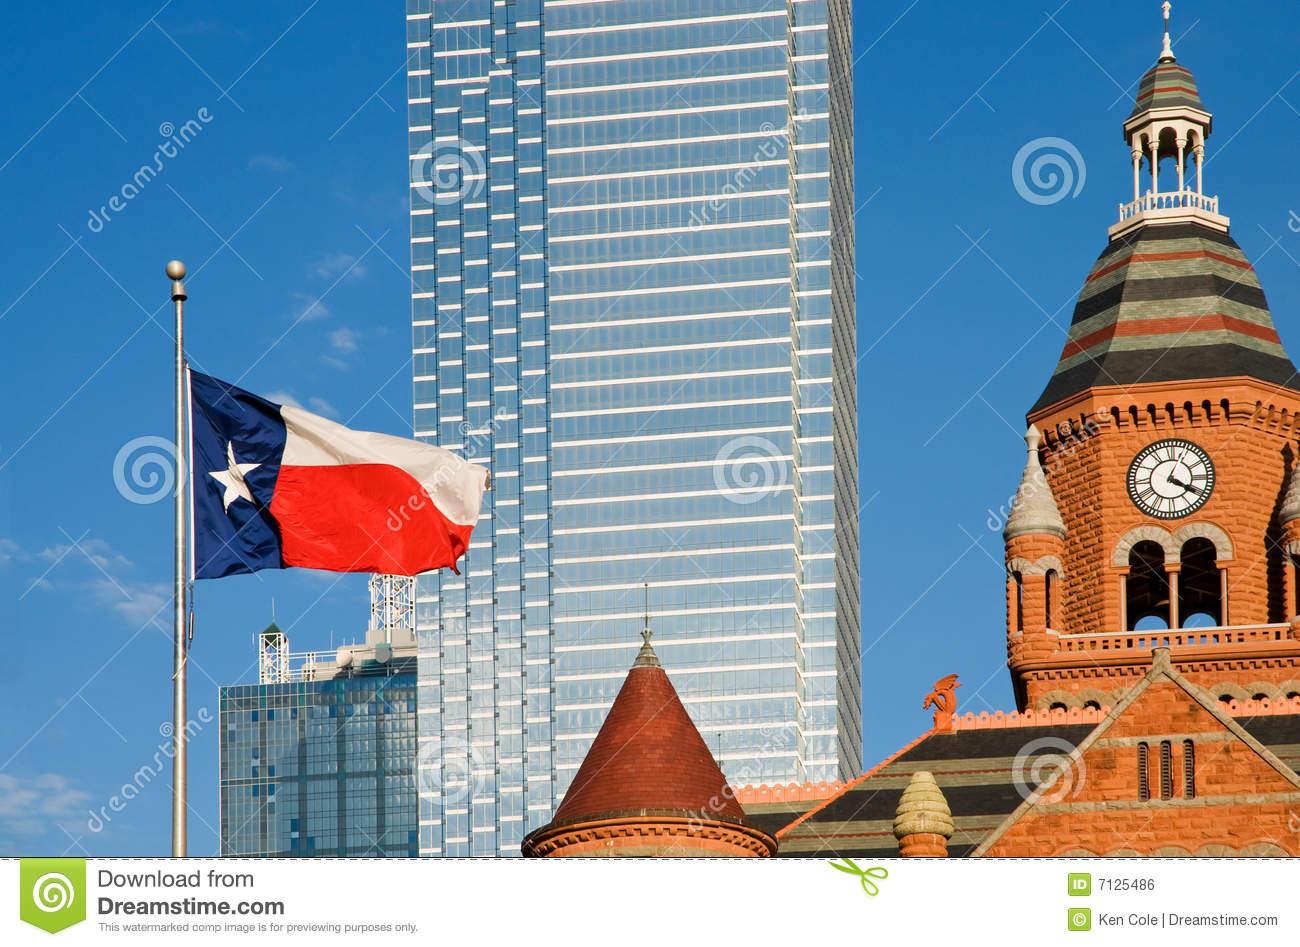 Dallas museum and Texas flag